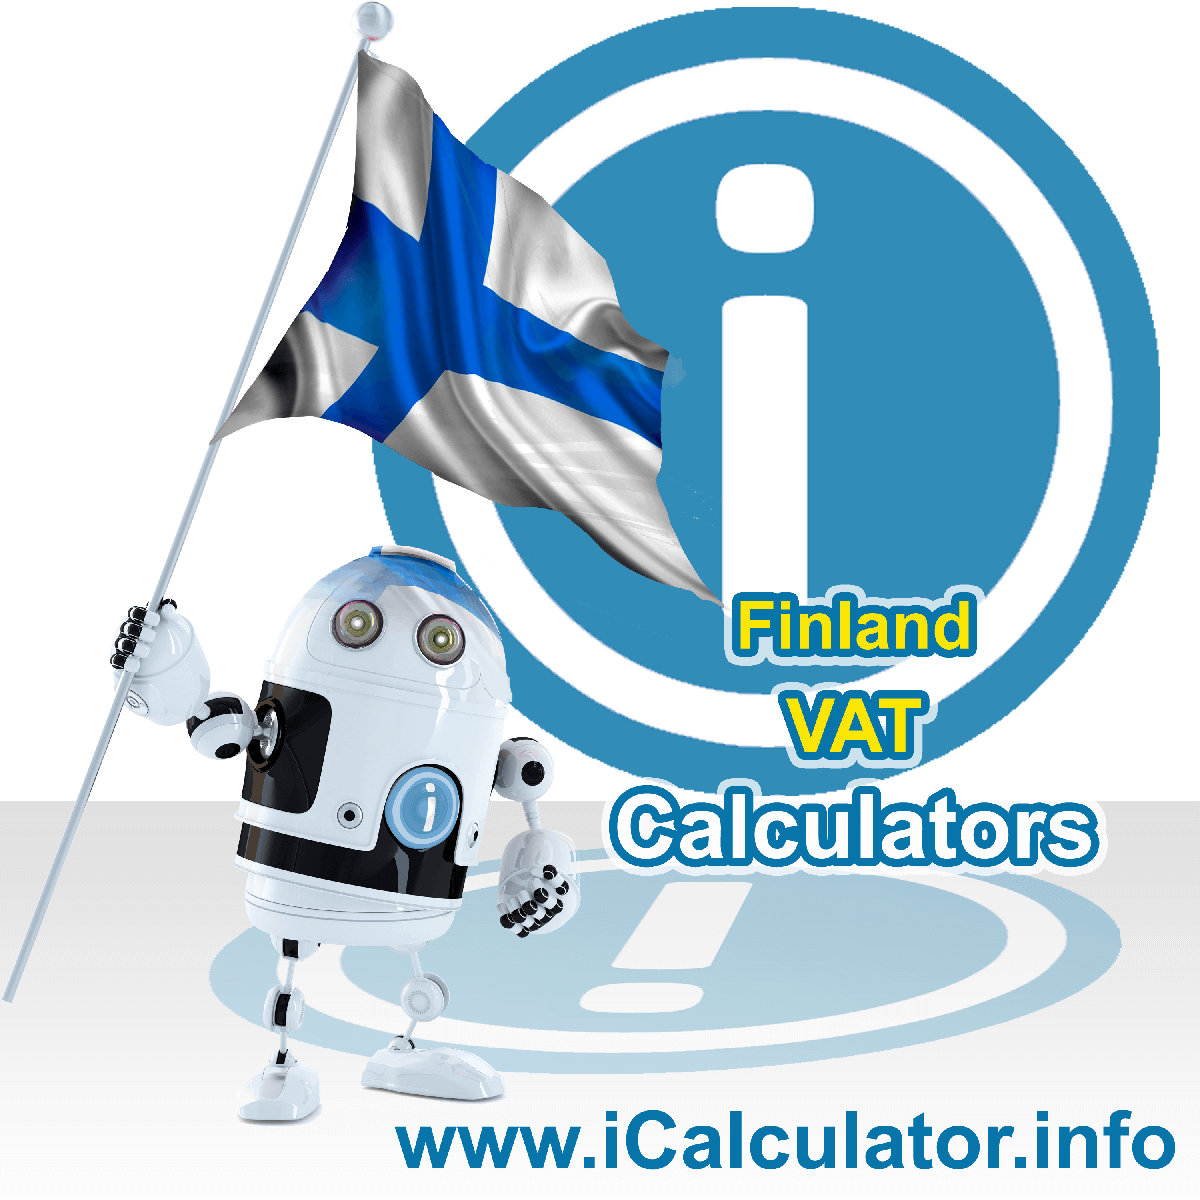 Finland VAT Calculator. This image shows the Finland flag and information relating to the VAT formula used for calculating Value Added Tax in Finland using the Finland VAT Calculator in 2020